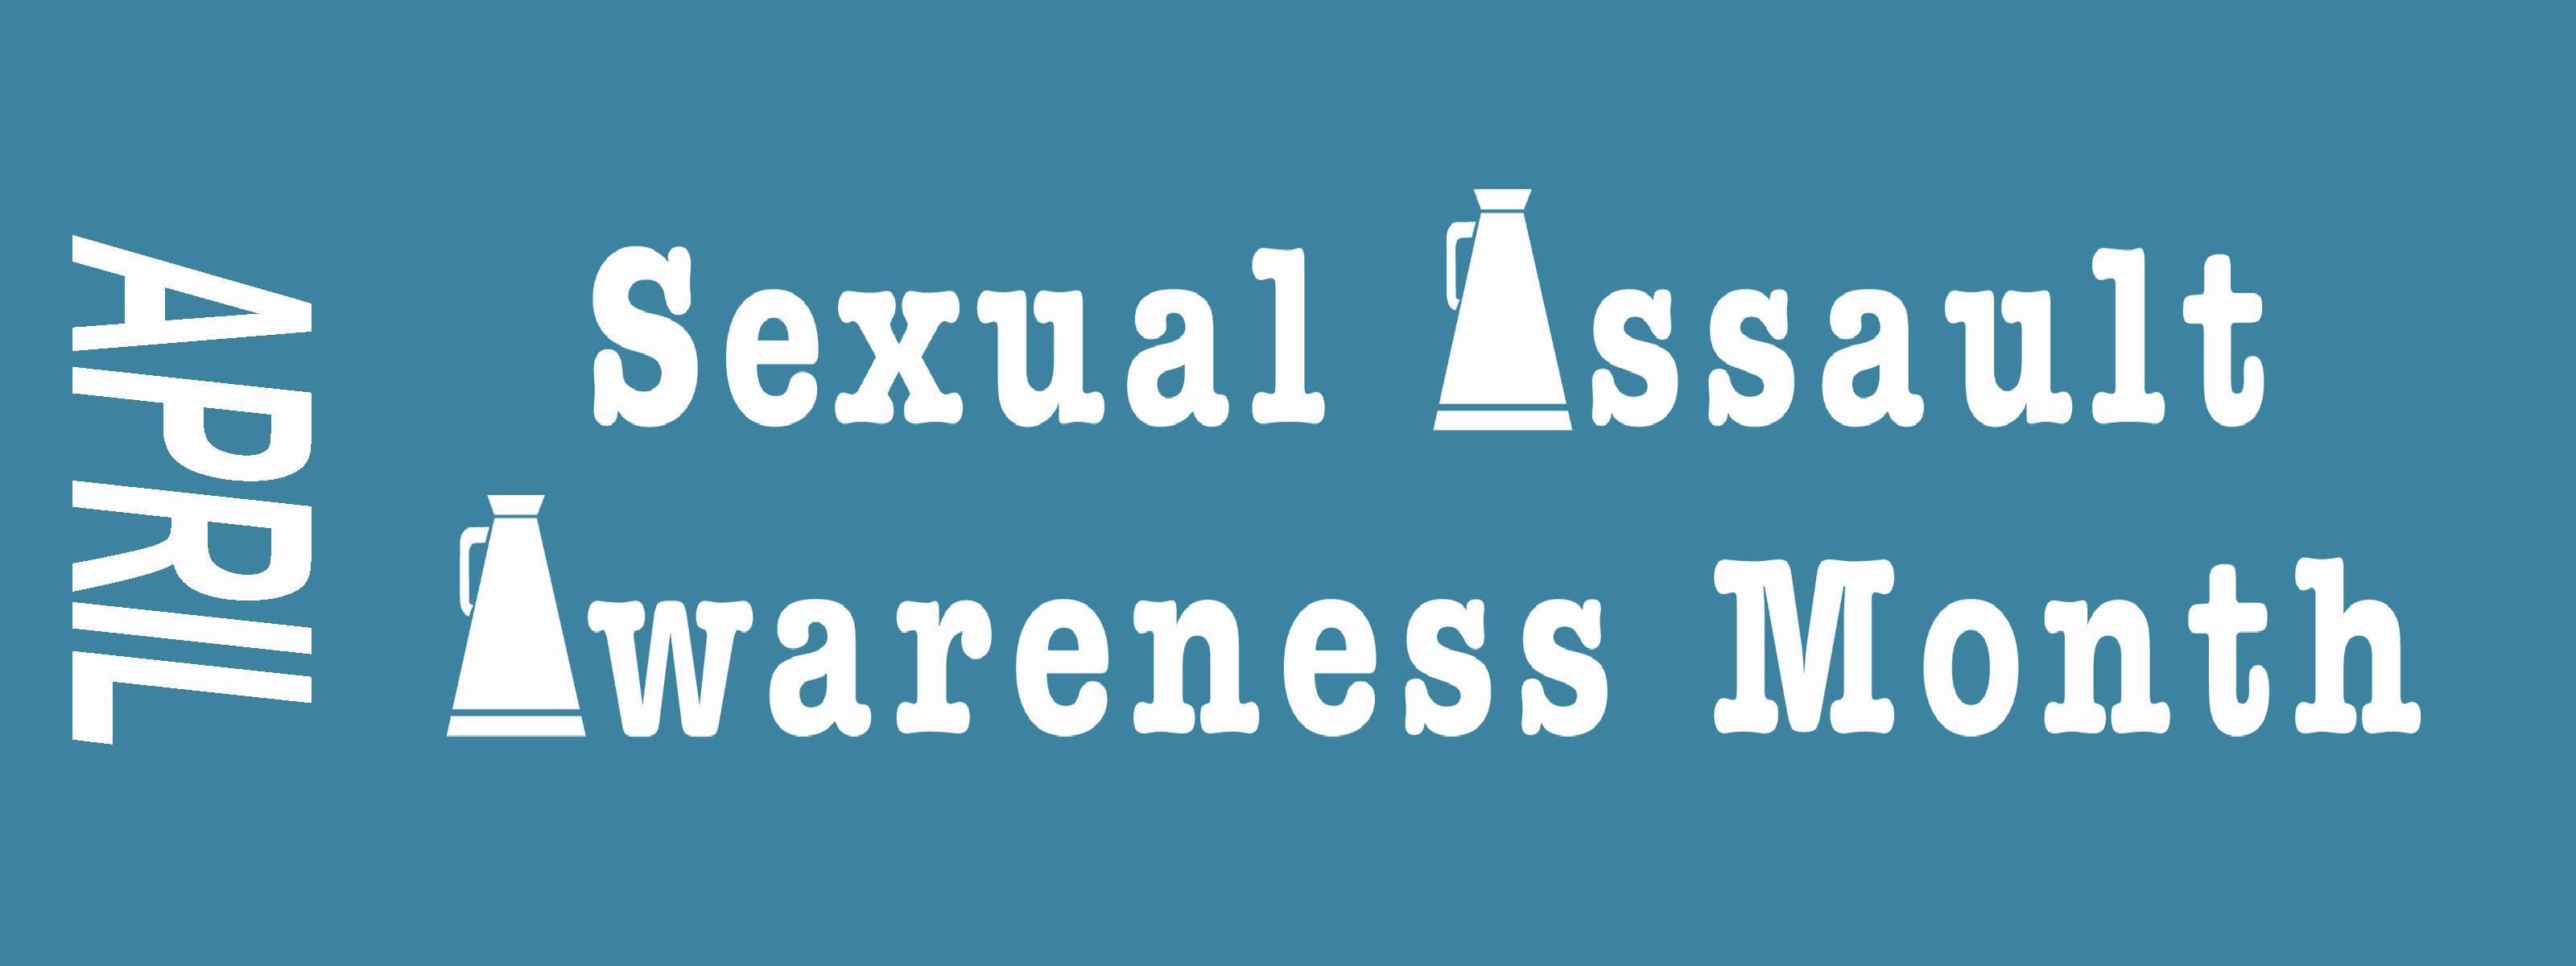 Assault awareness month sexual